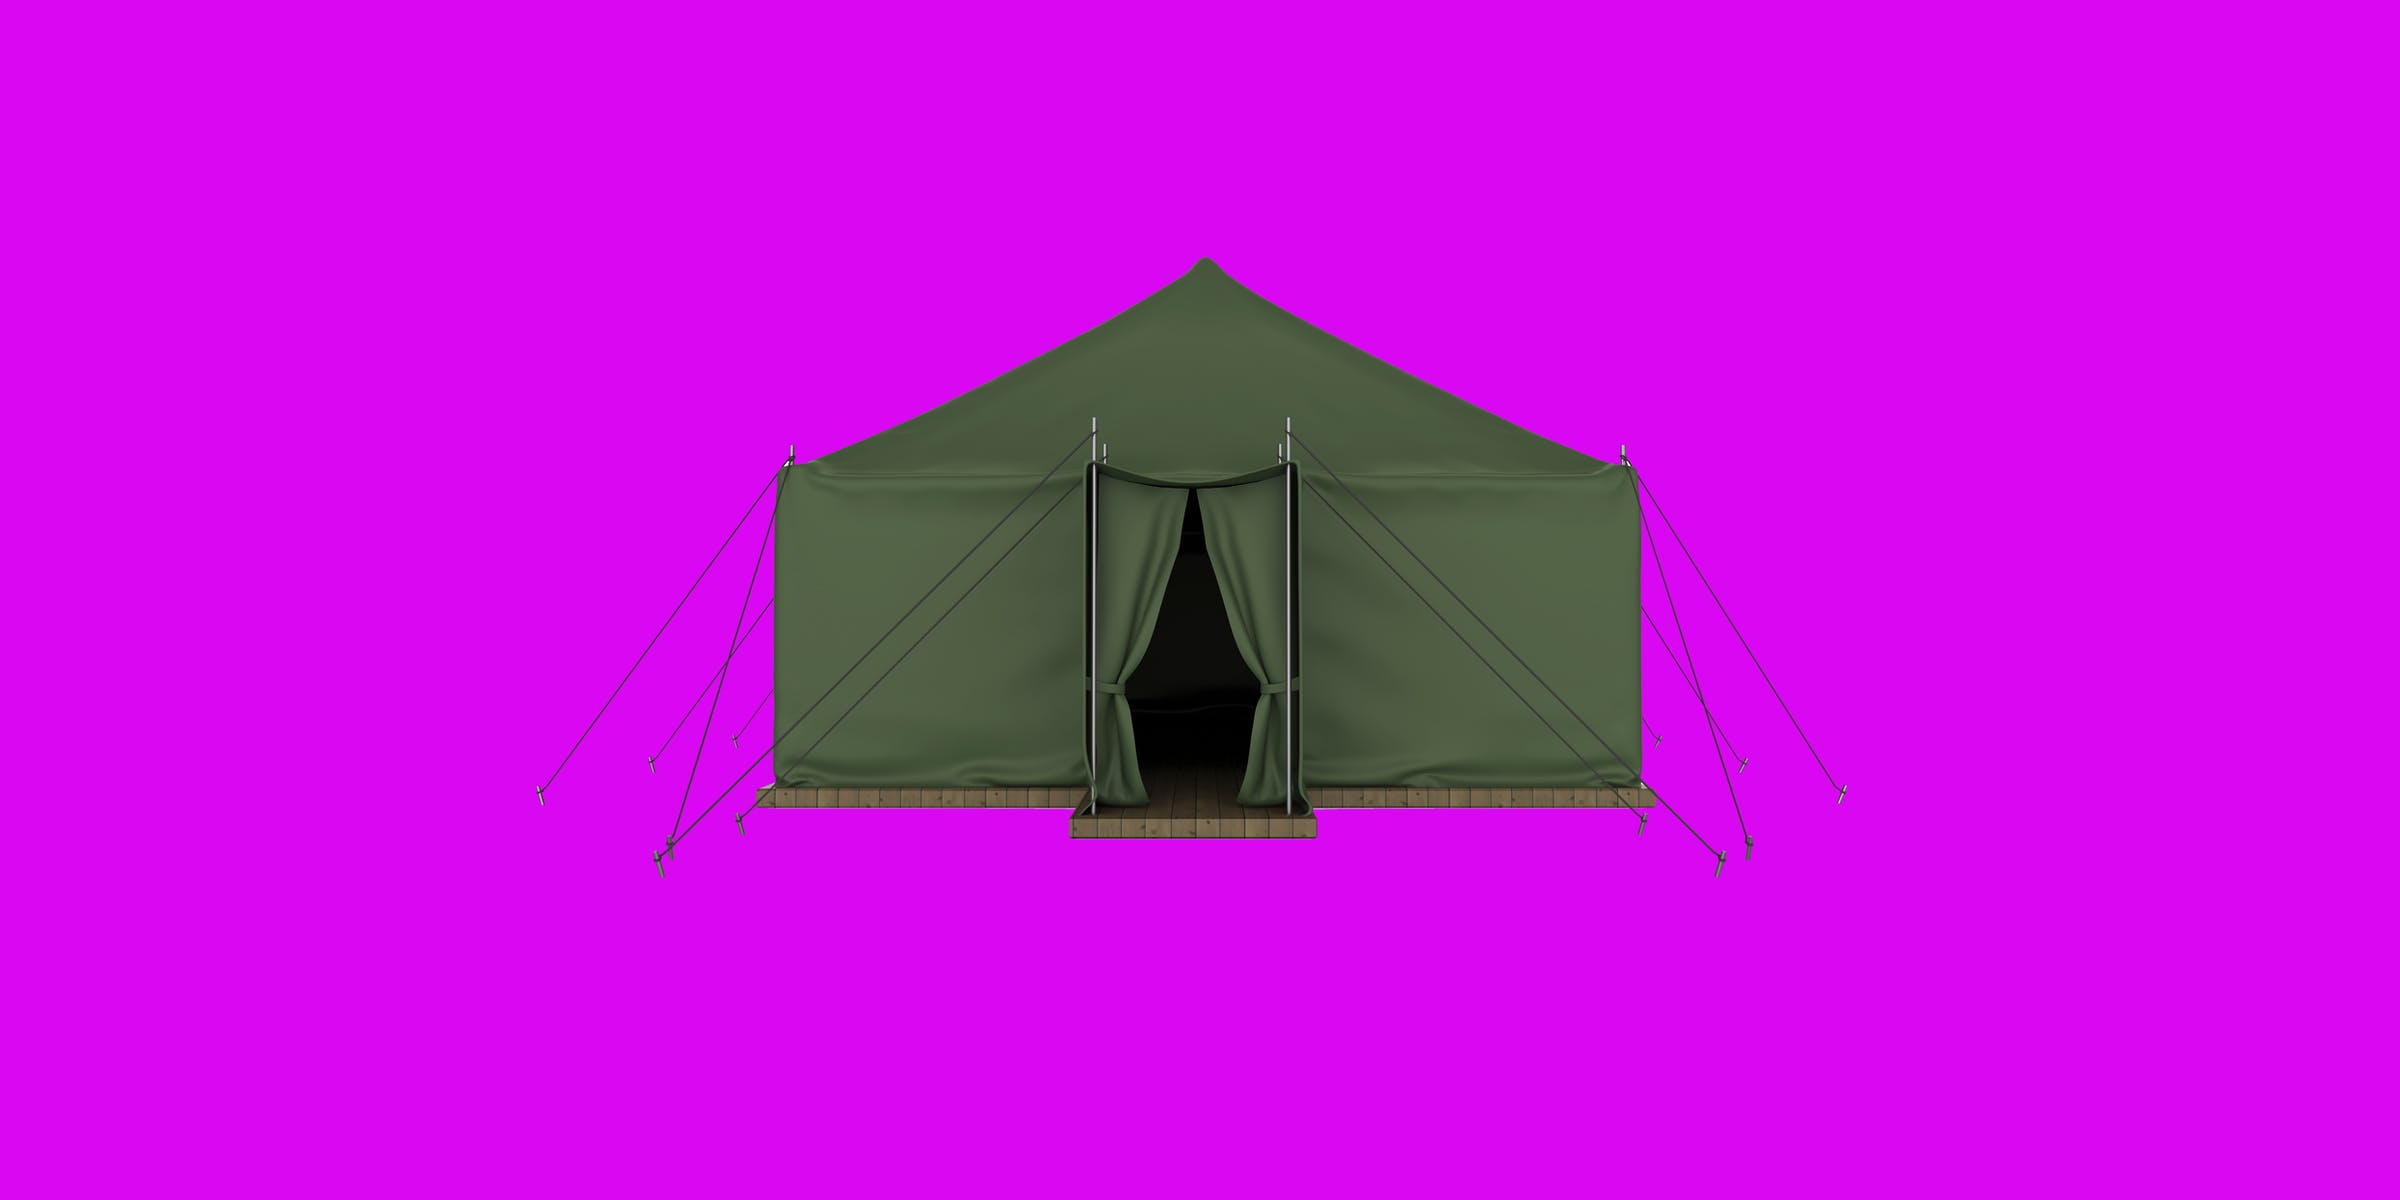 tent on a pink background